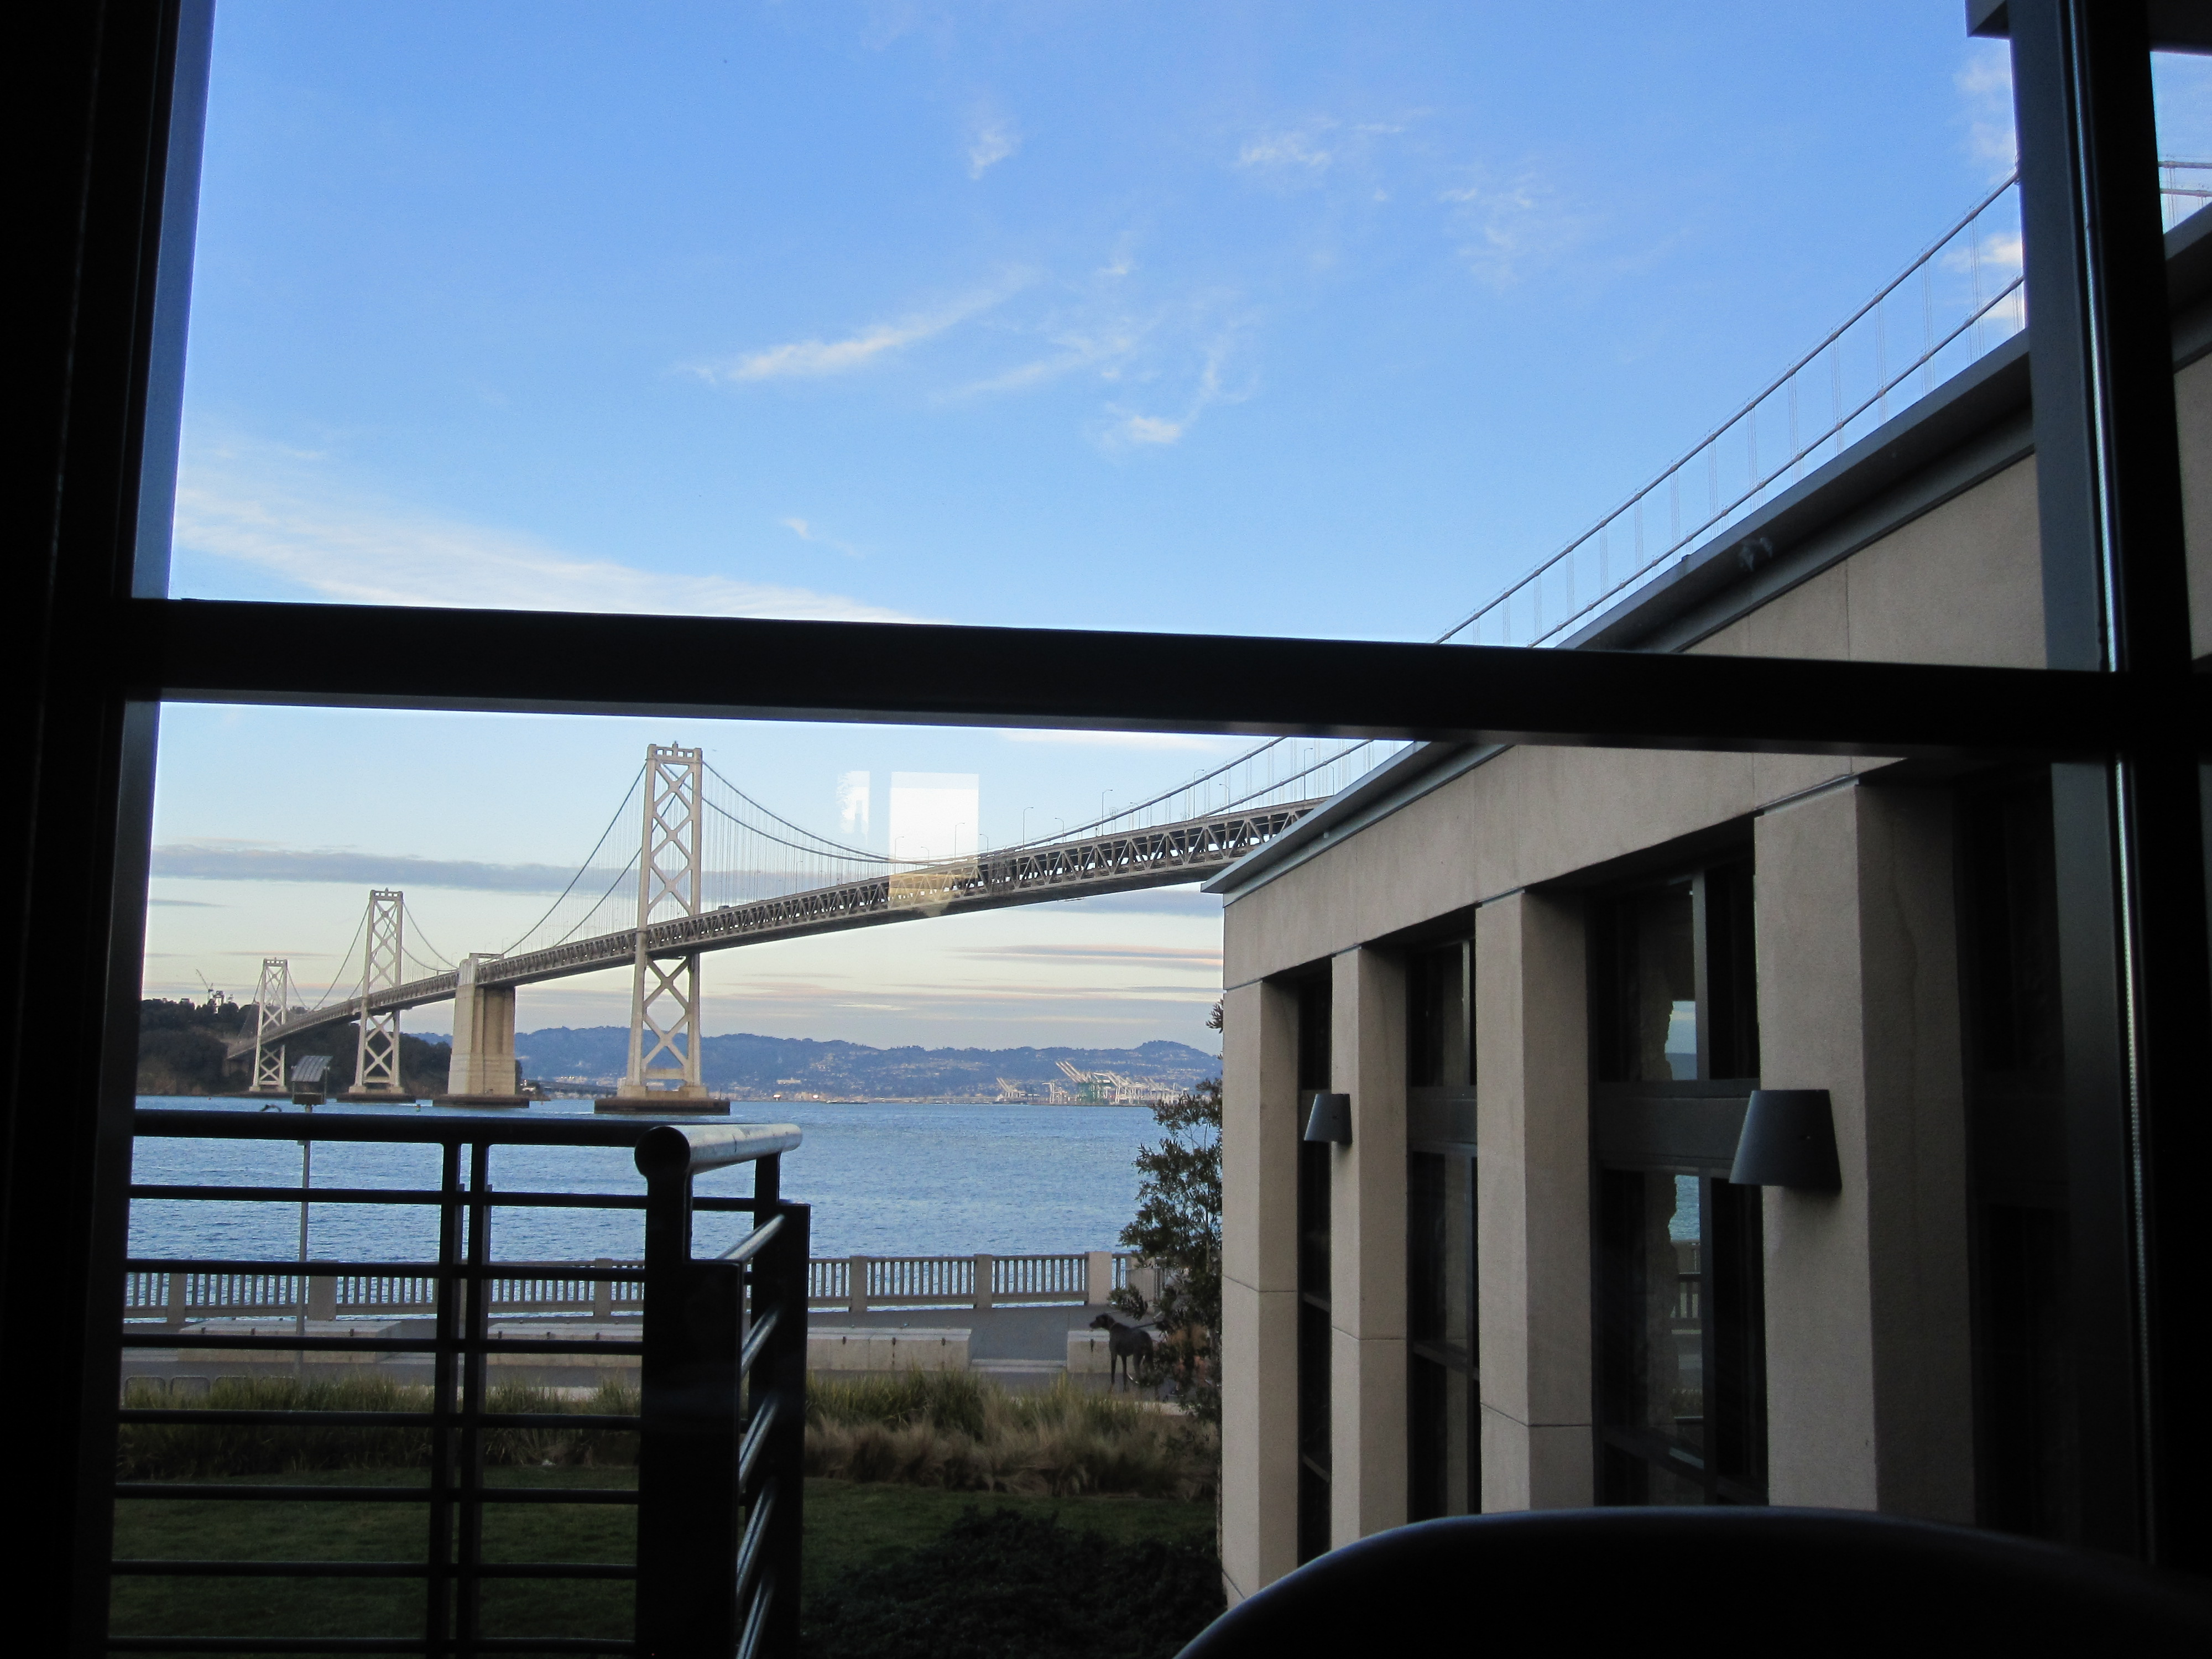 Epic is located on the Embarcadero and has a gorgegous view of the Bay Bridge.